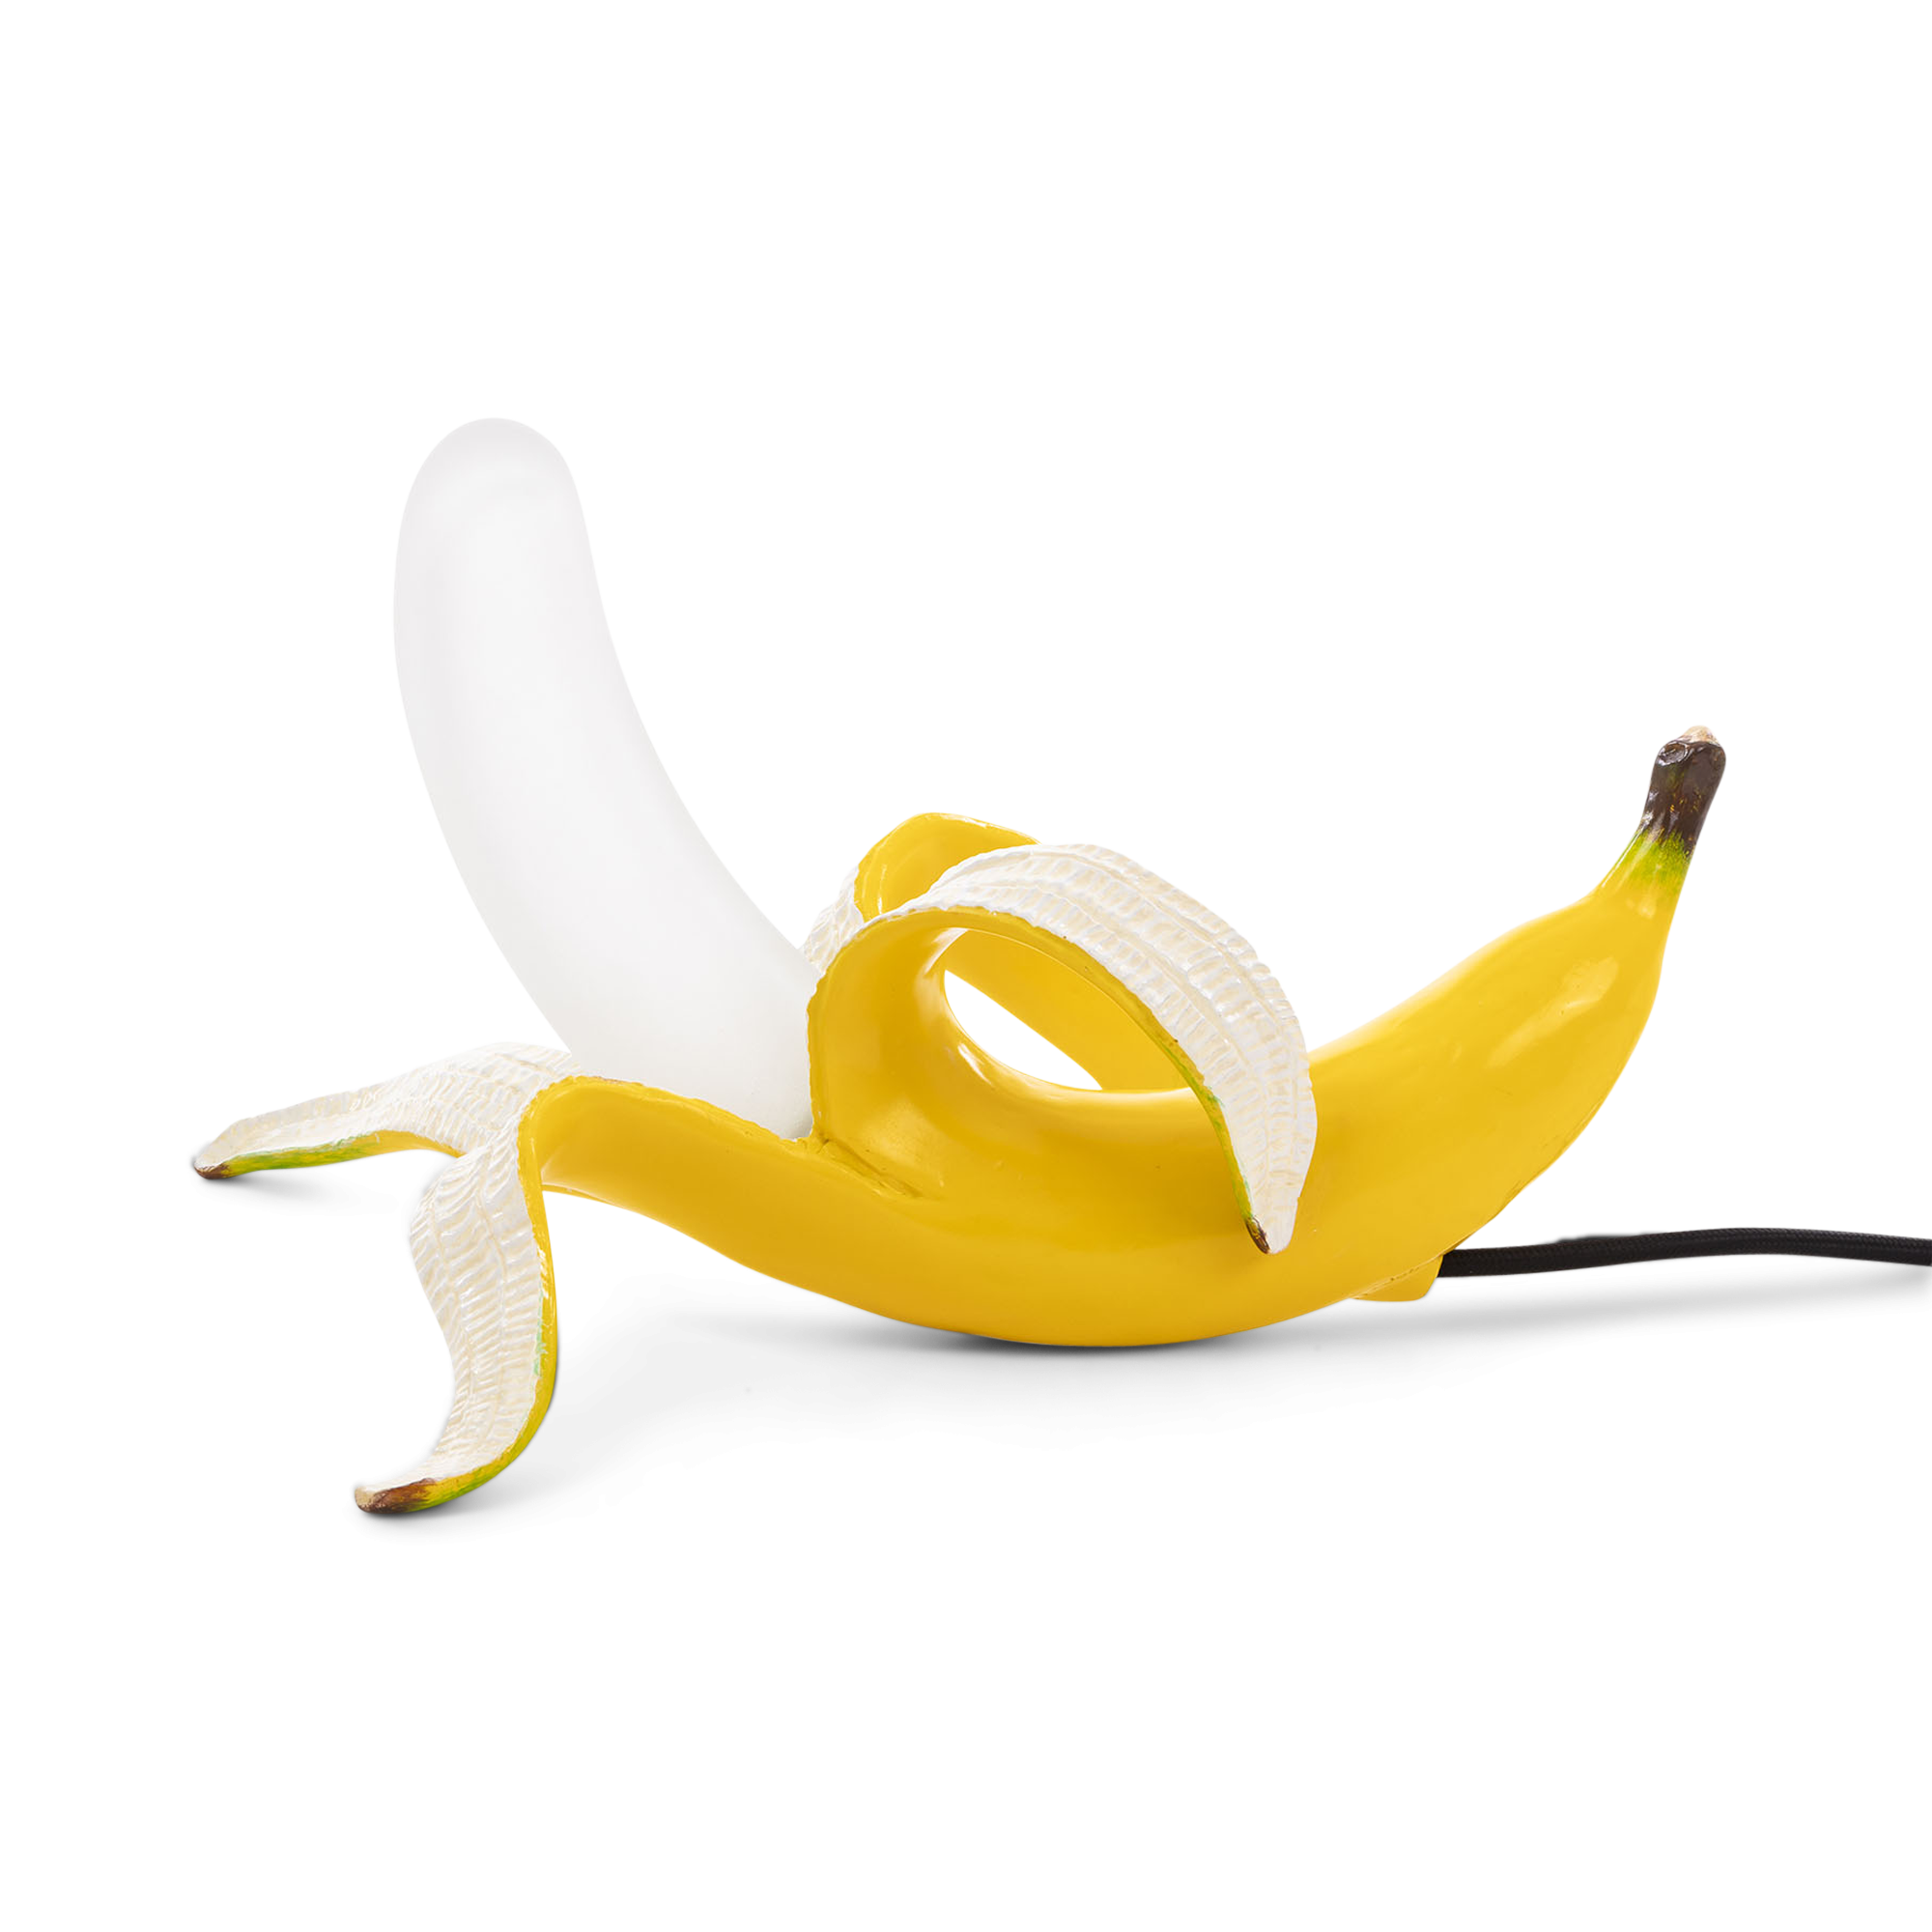 banana-lamp-yellow-dewei-1